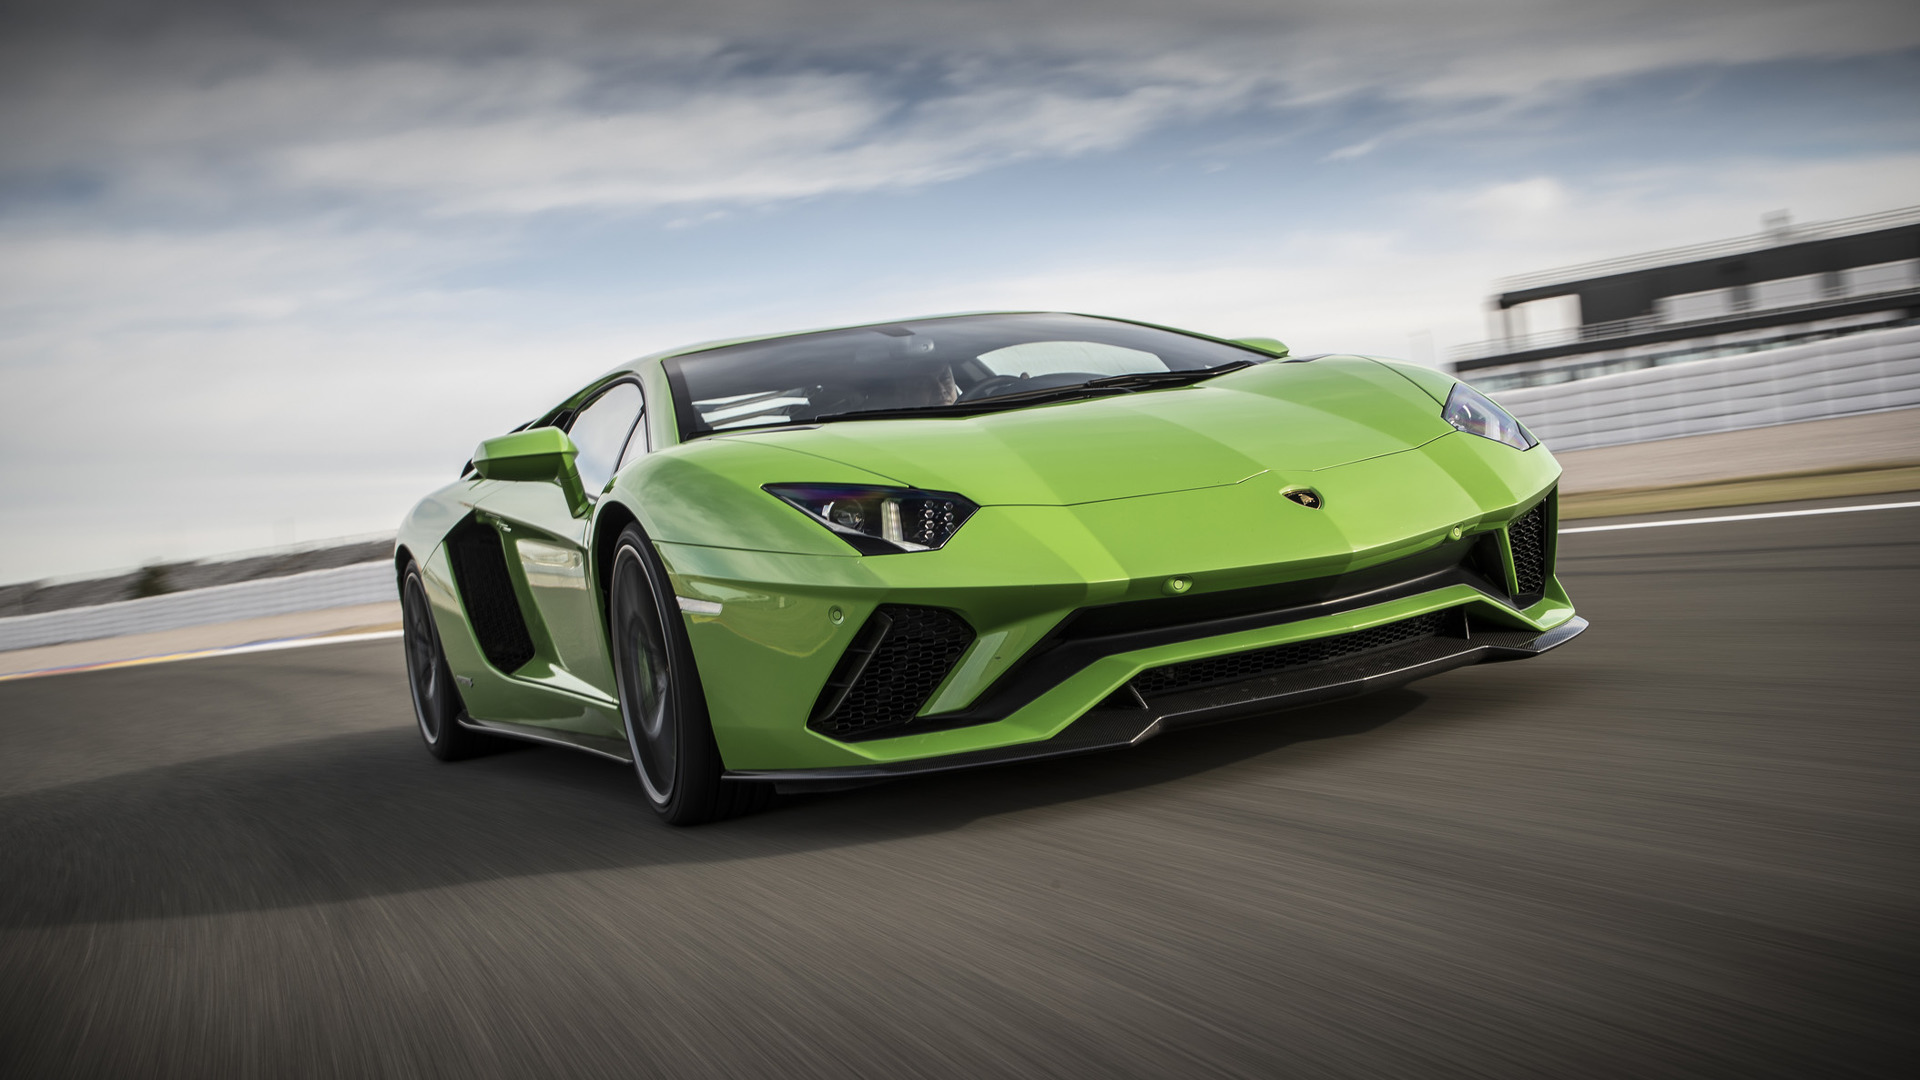 Lamborghini Aventador S Coupe News And Reviews Motor1 Com